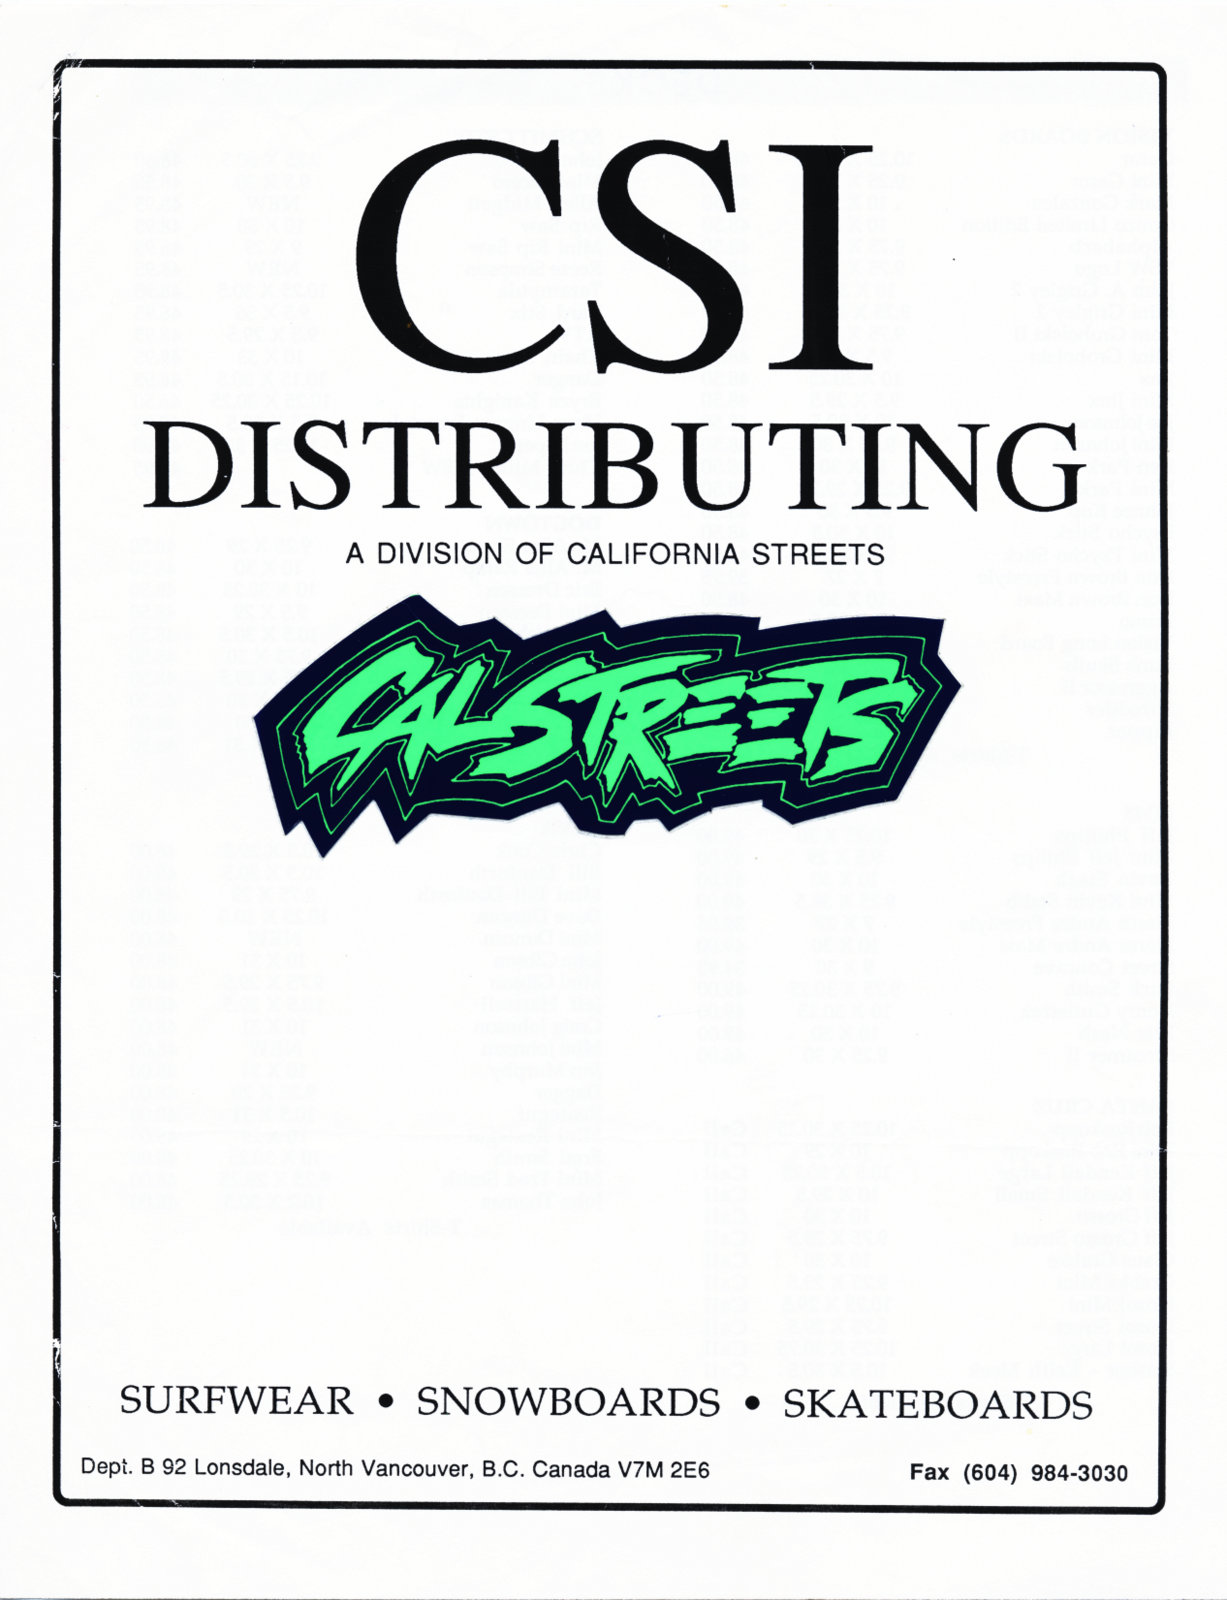 CSI Cal Streets Industries Catalog